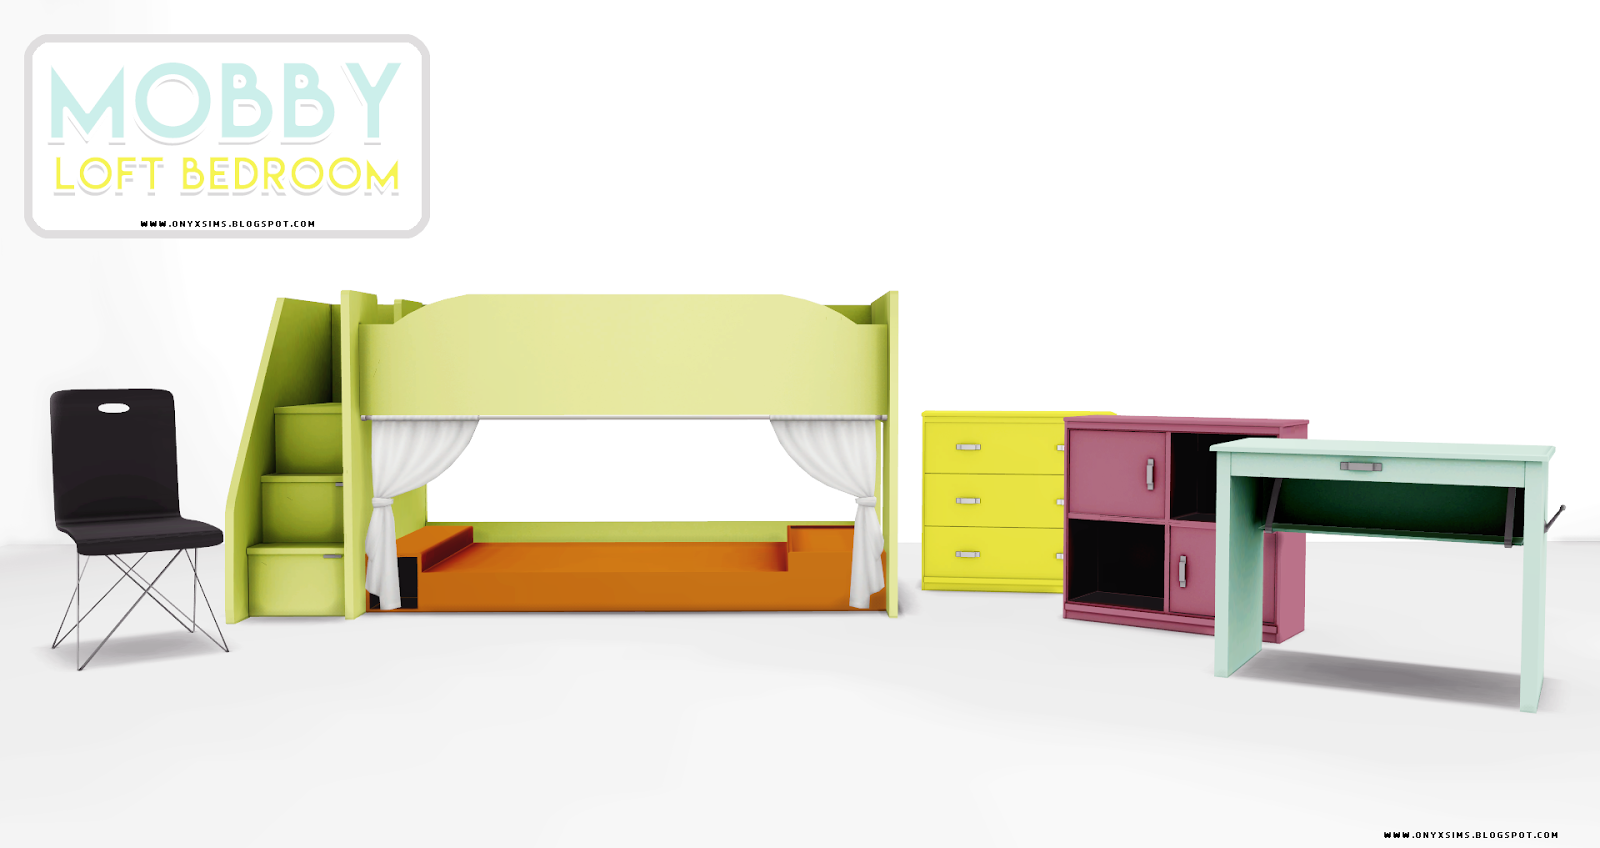 How To Make Bunk Bed In Sims